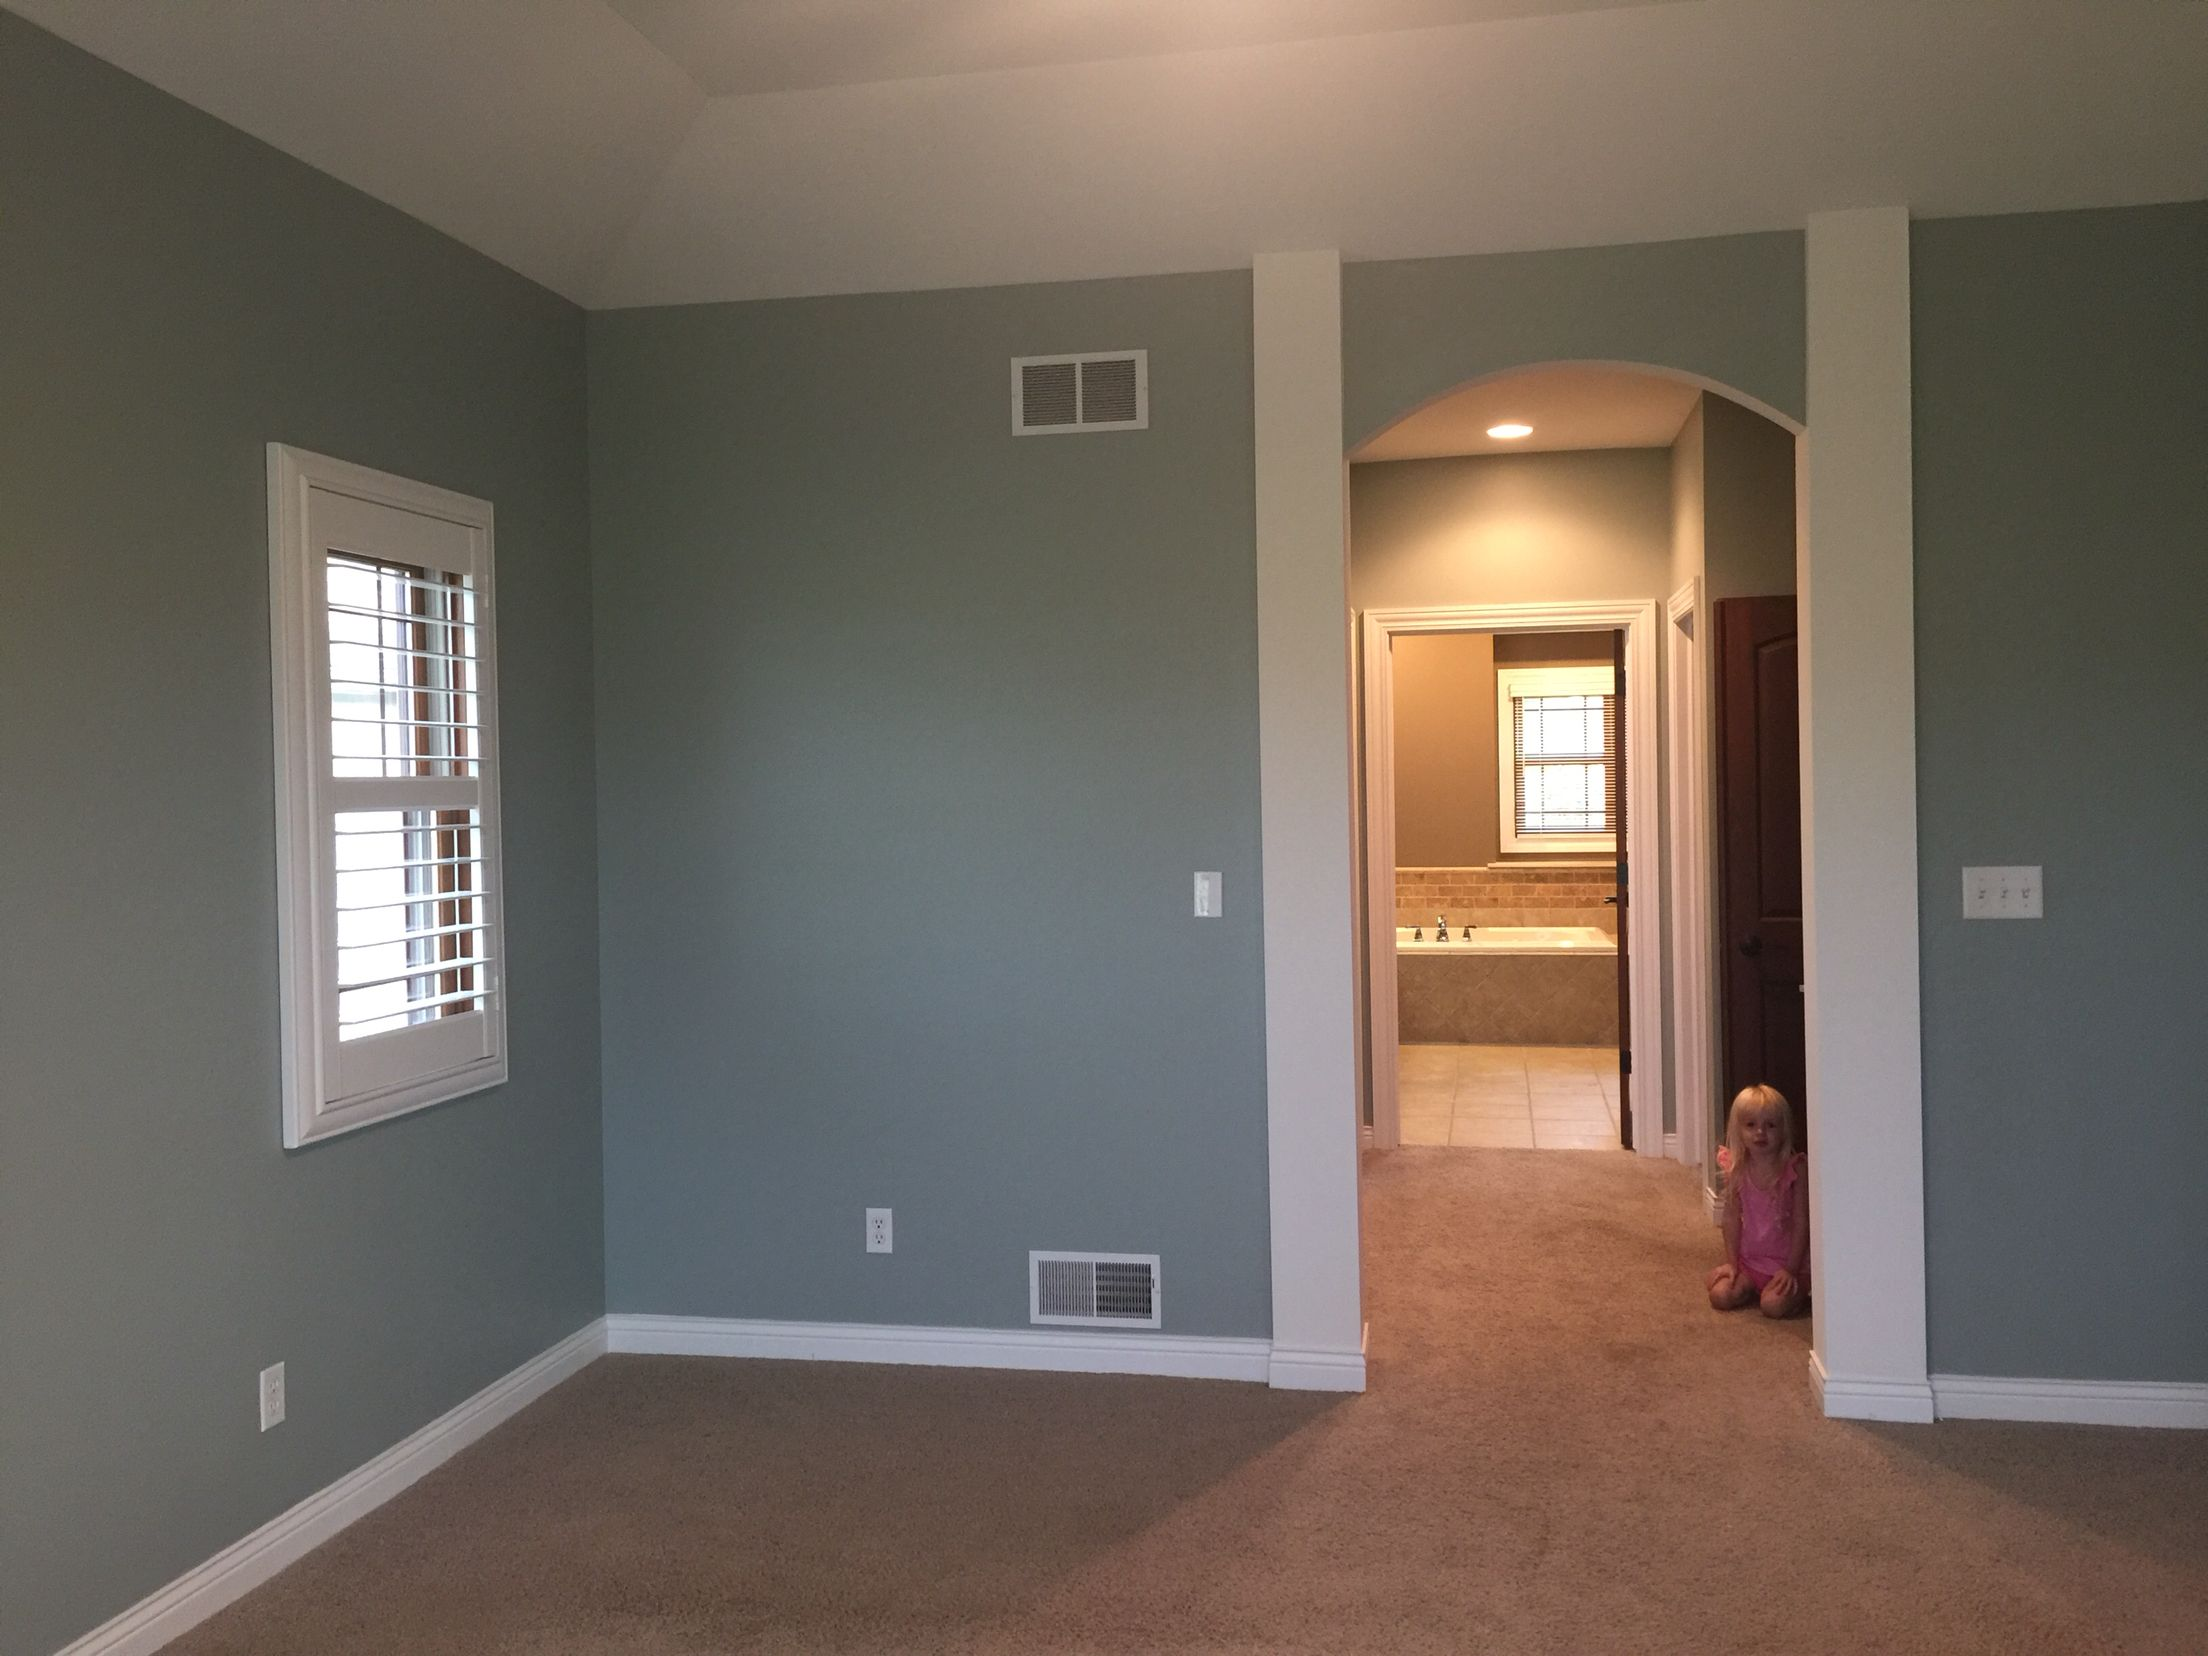 Sherwin williams oyster bay paint living room paint - Sherwin williams interior paint finishes ...